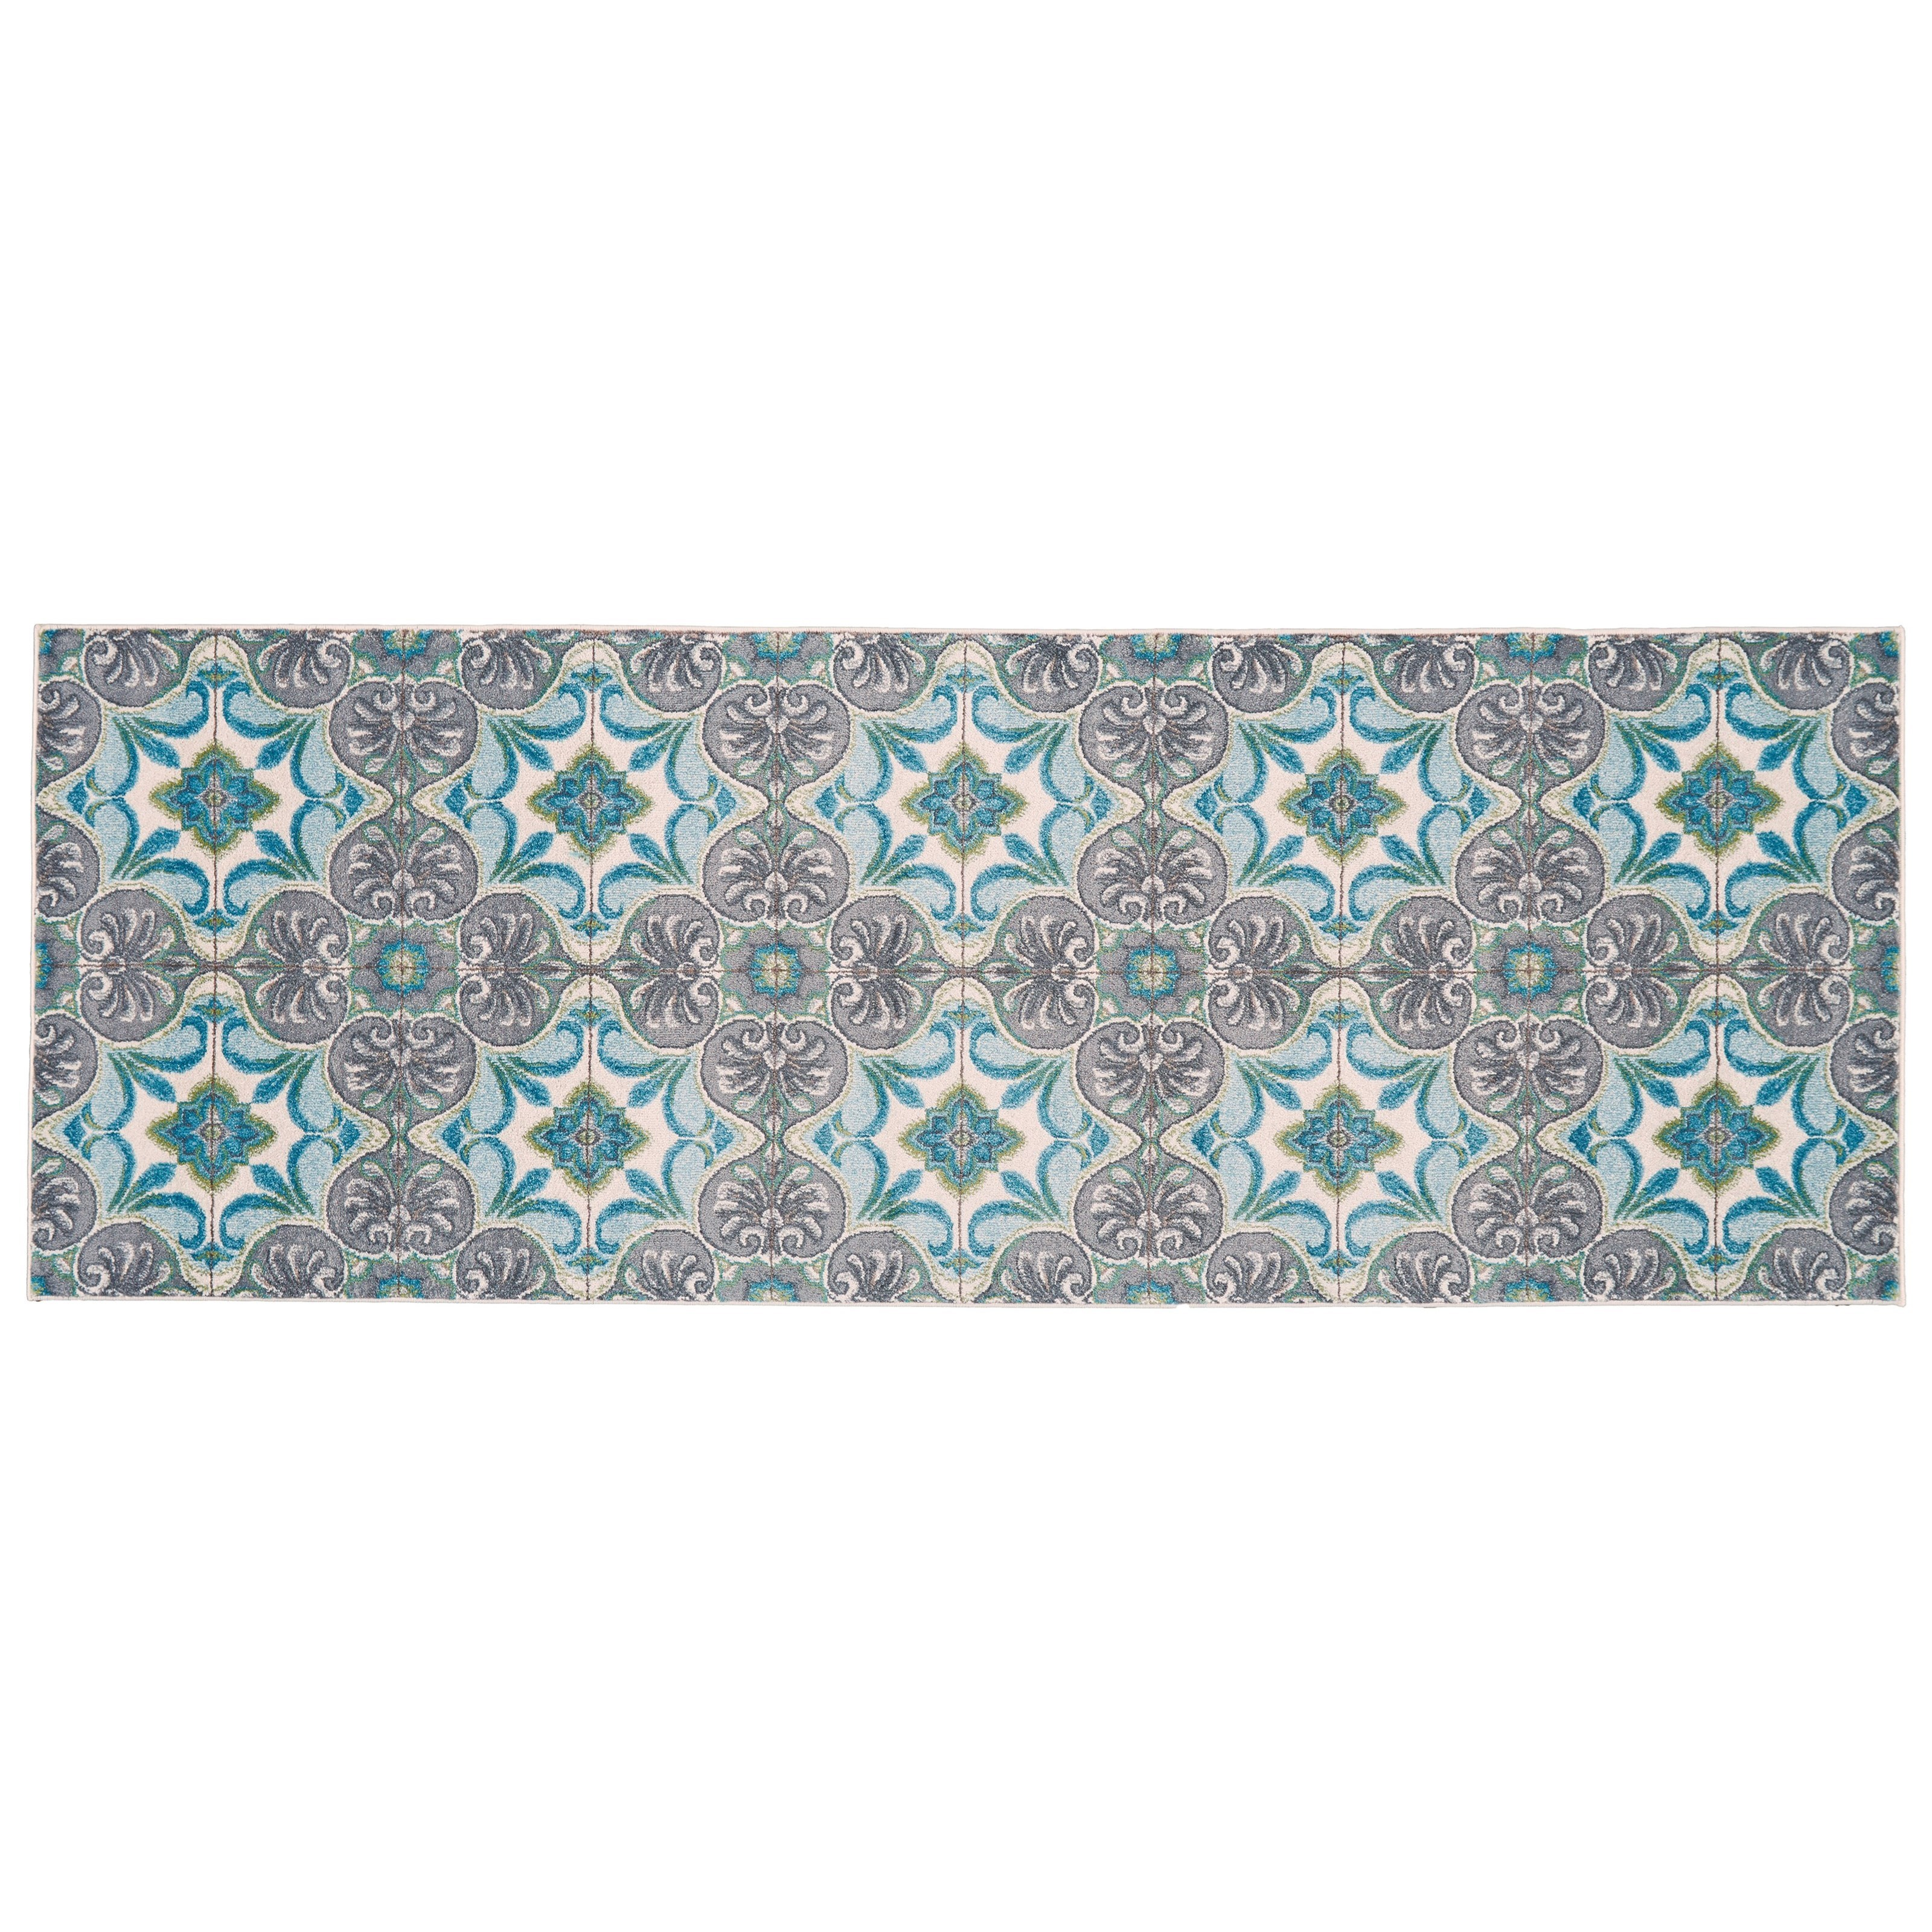 Peachy Feizy Rugs Harlow Sea Glass 2 10 X 7 10 Runner Rug Onthecornerstone Fun Painted Chair Ideas Images Onthecornerstoneorg